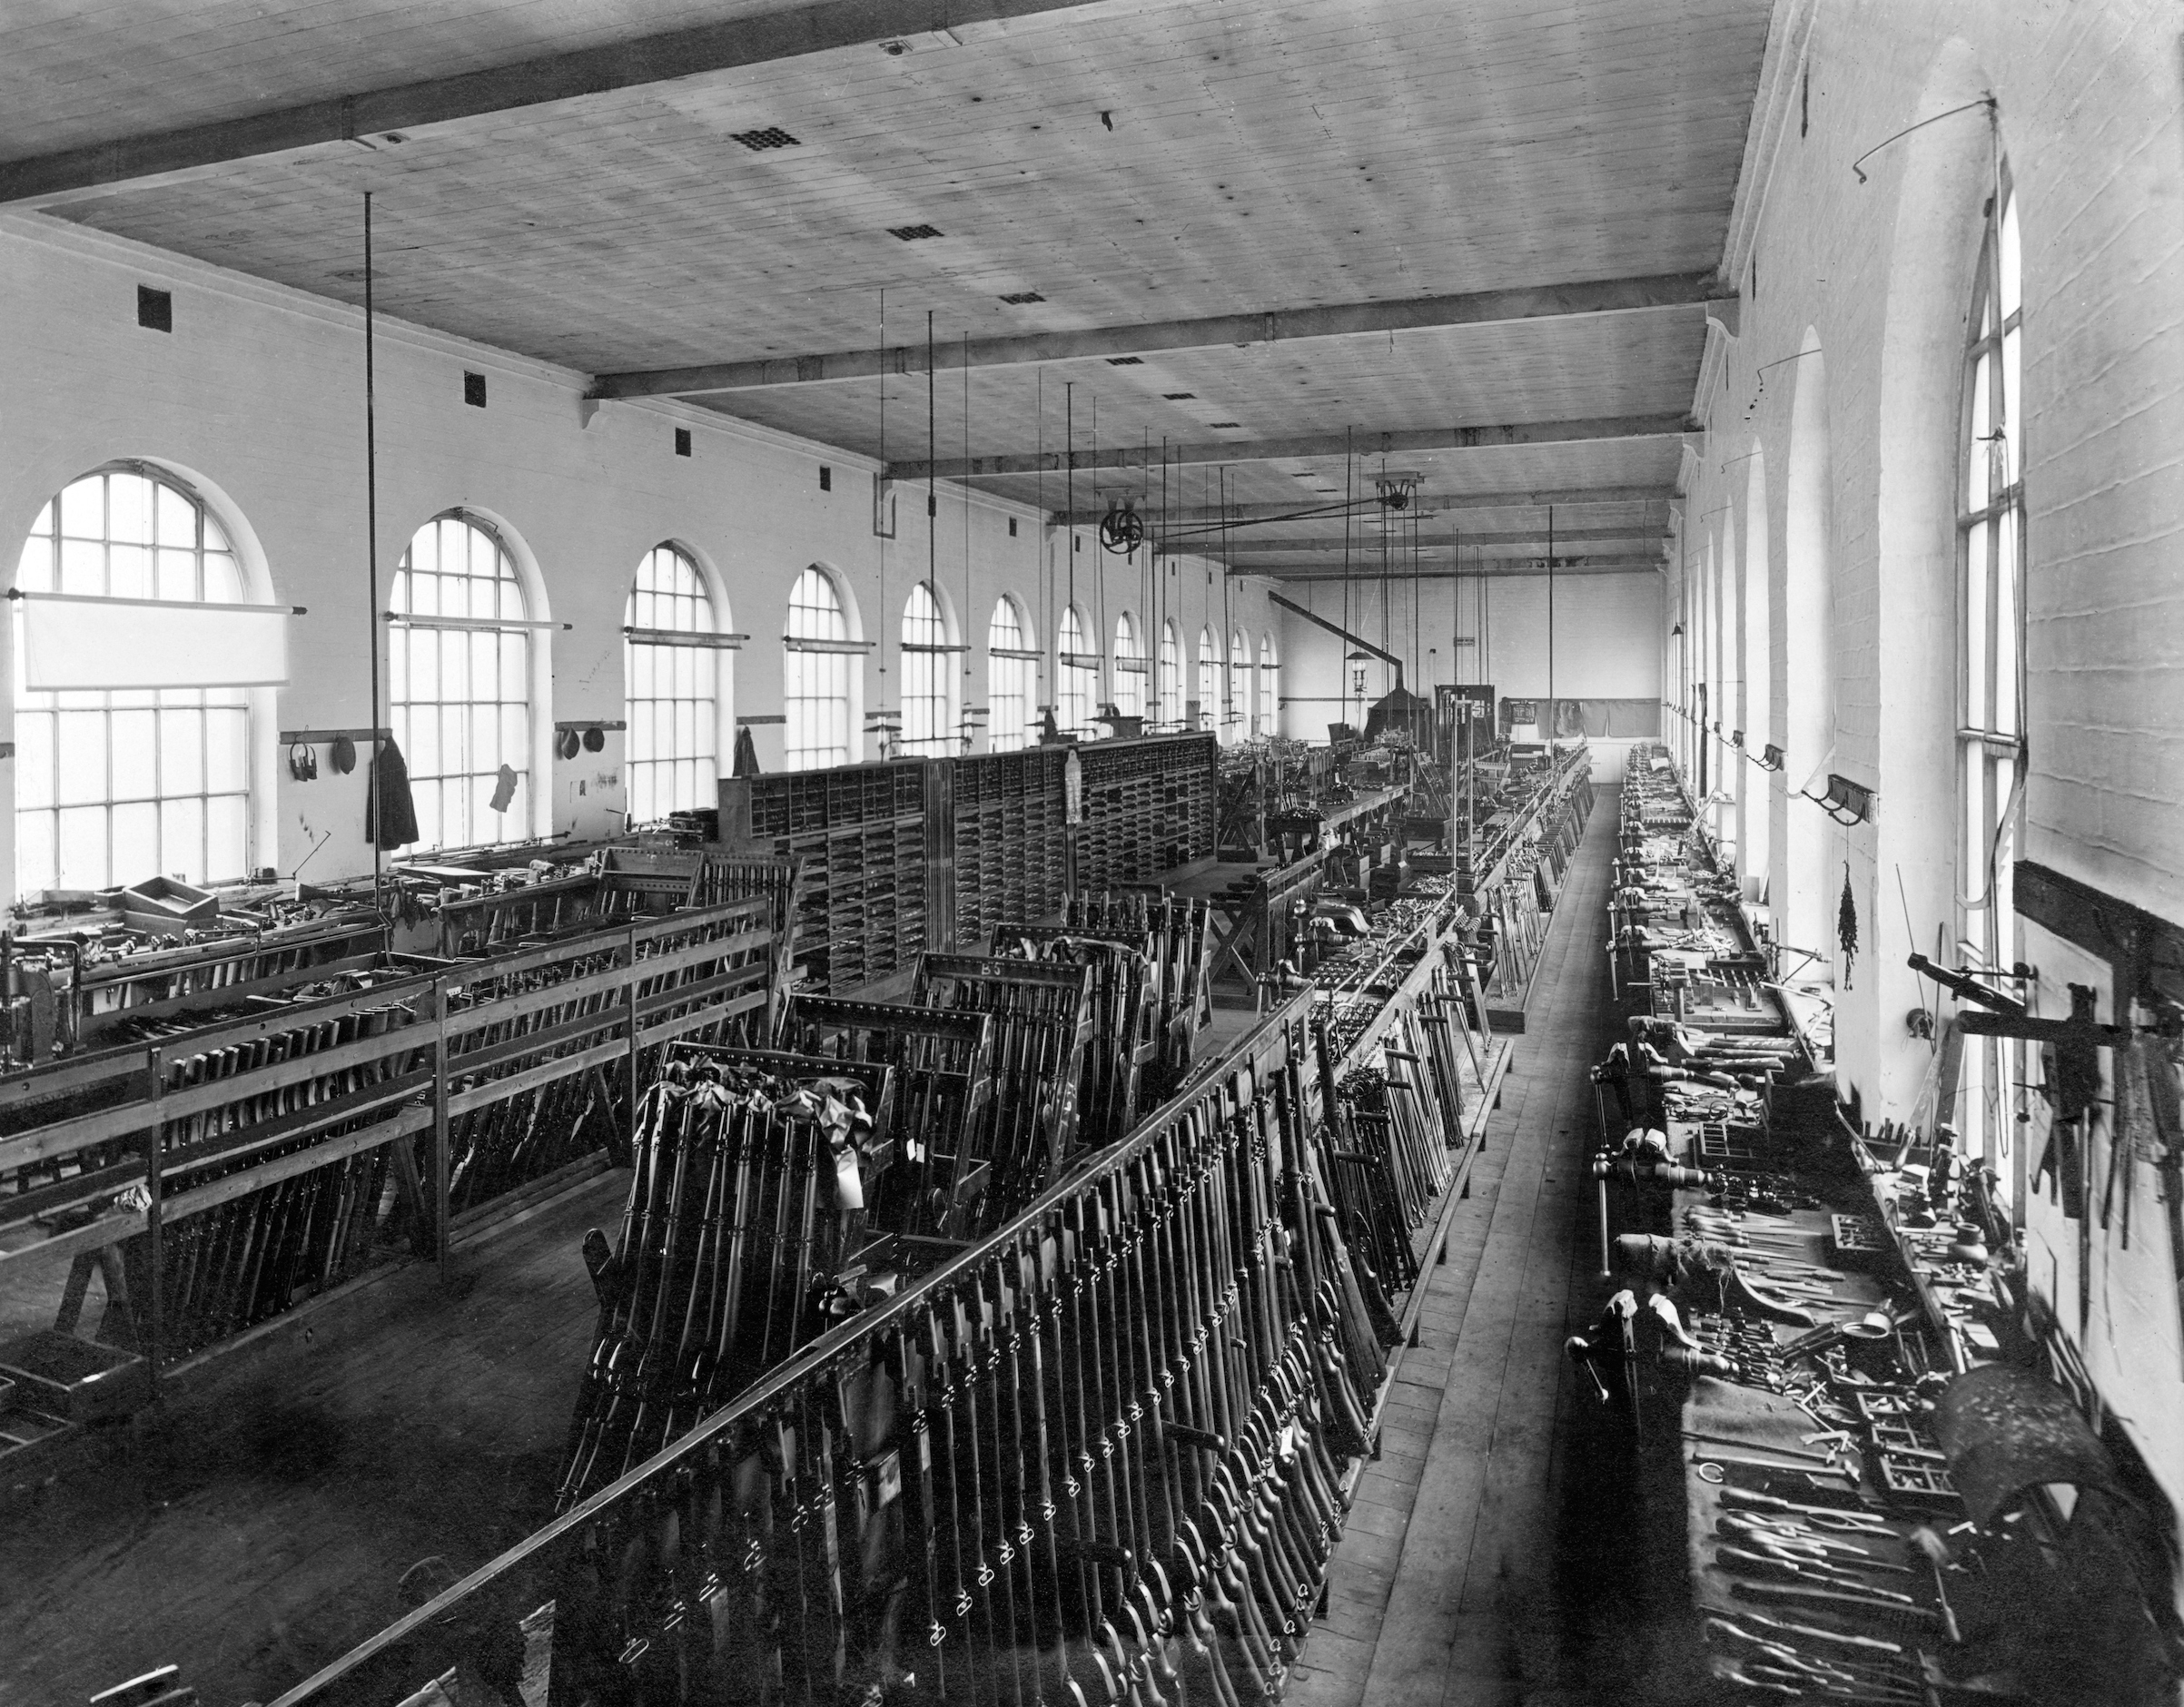 Interior of the Birmingham Small Arms Company Limited (BSA), Circa 1930s.